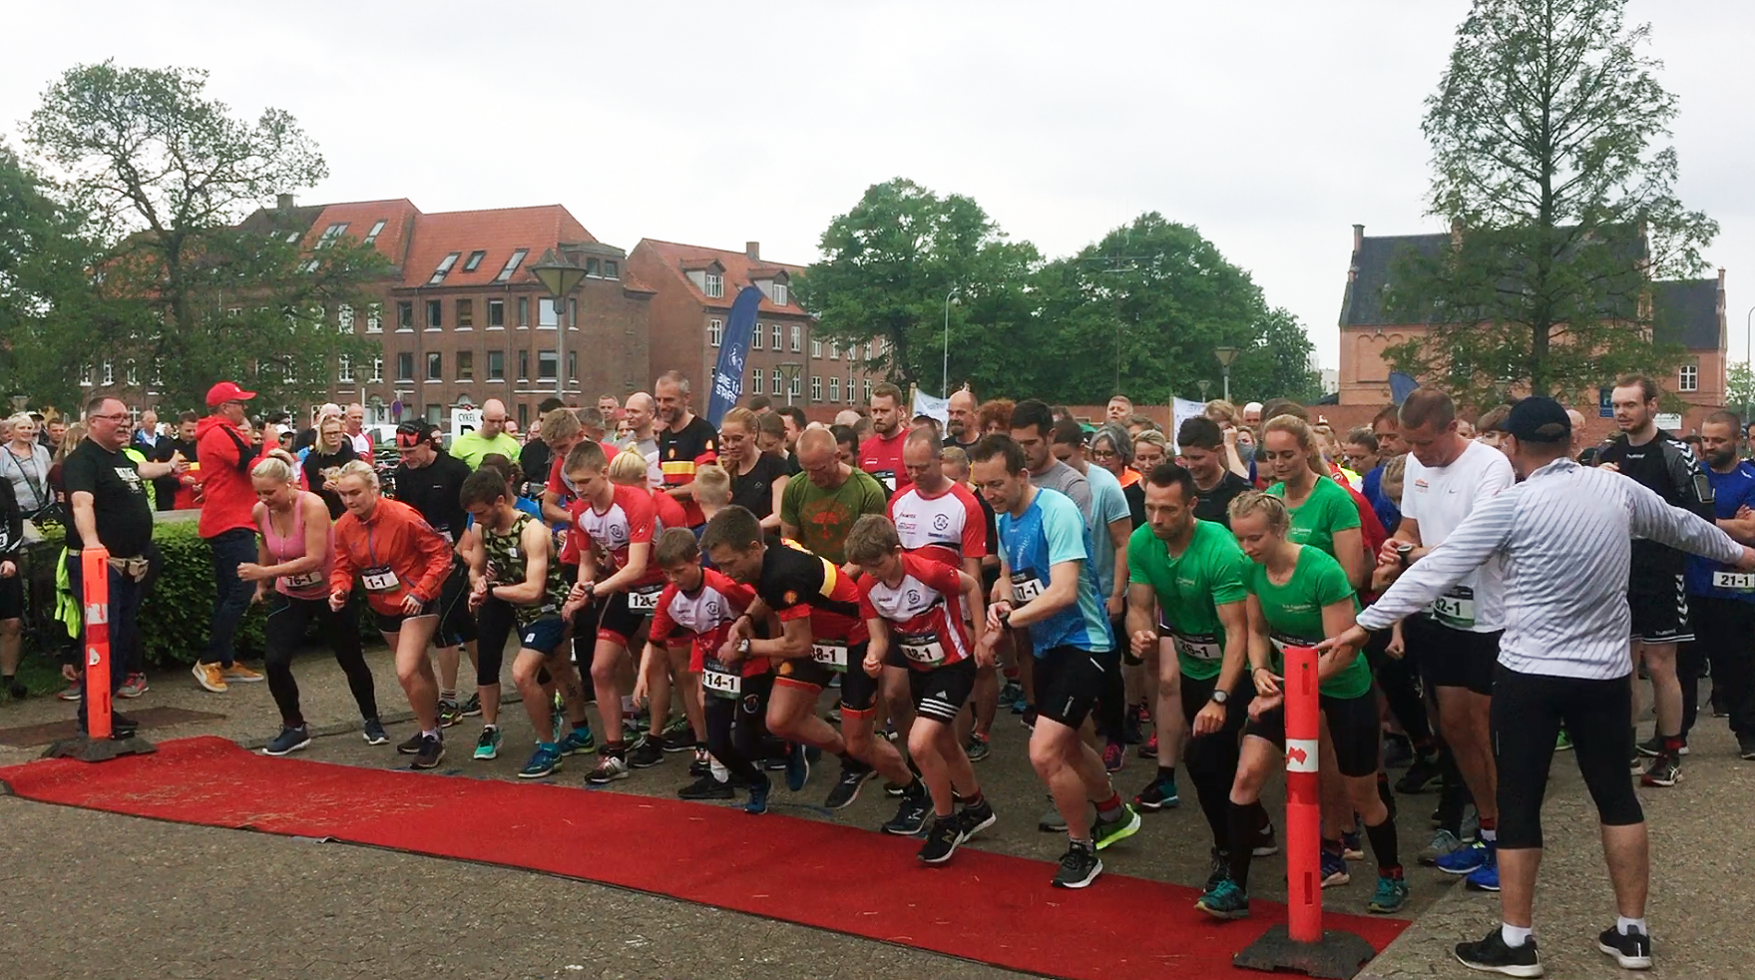 SE VIDEO : Bike & Run 2019 i Fredericia